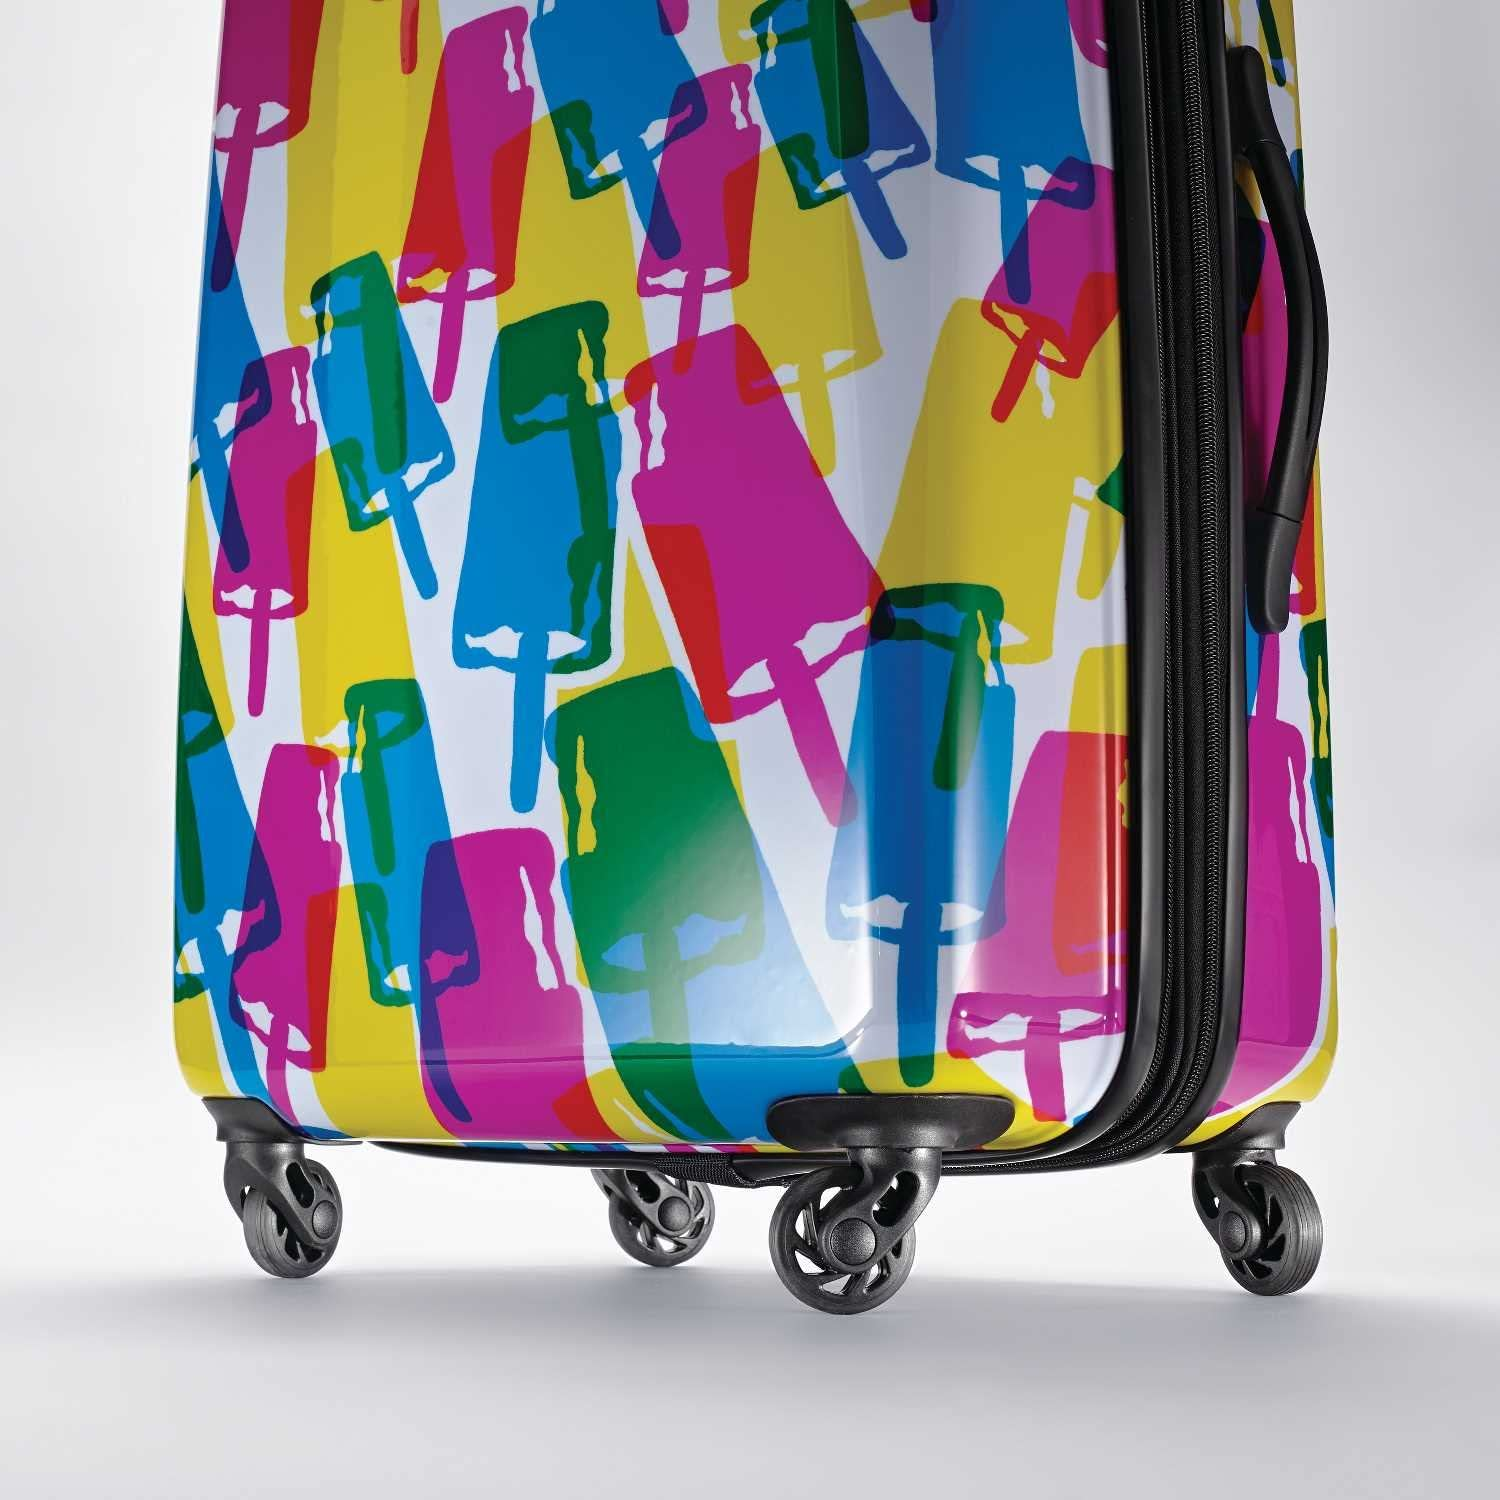 American Tourister Moonlight Hardside Expandable Luggage with Spinner Wheels Palm Trees